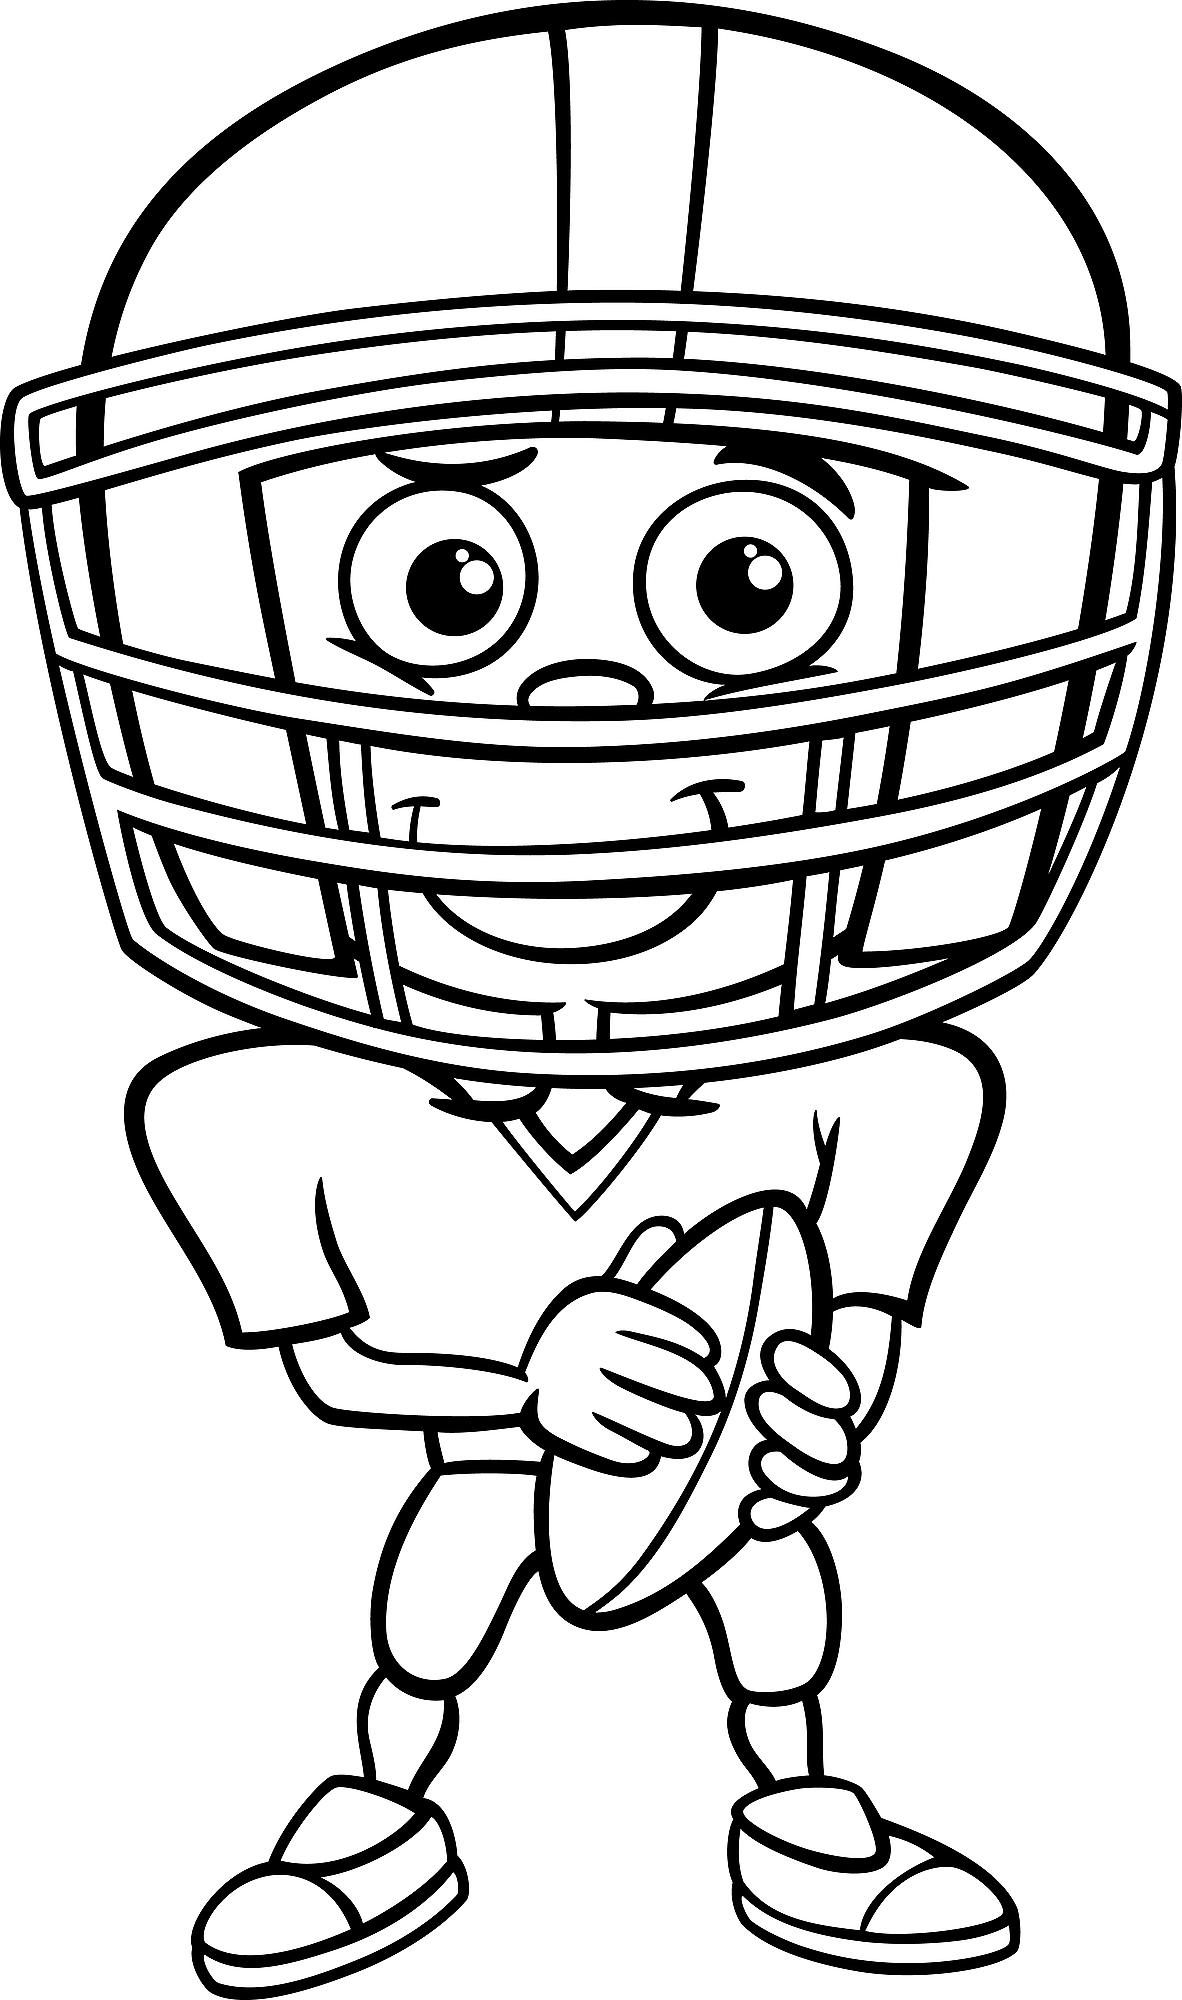 football coloring pages to print football player coloring pages to download and print for free coloring print pages to football